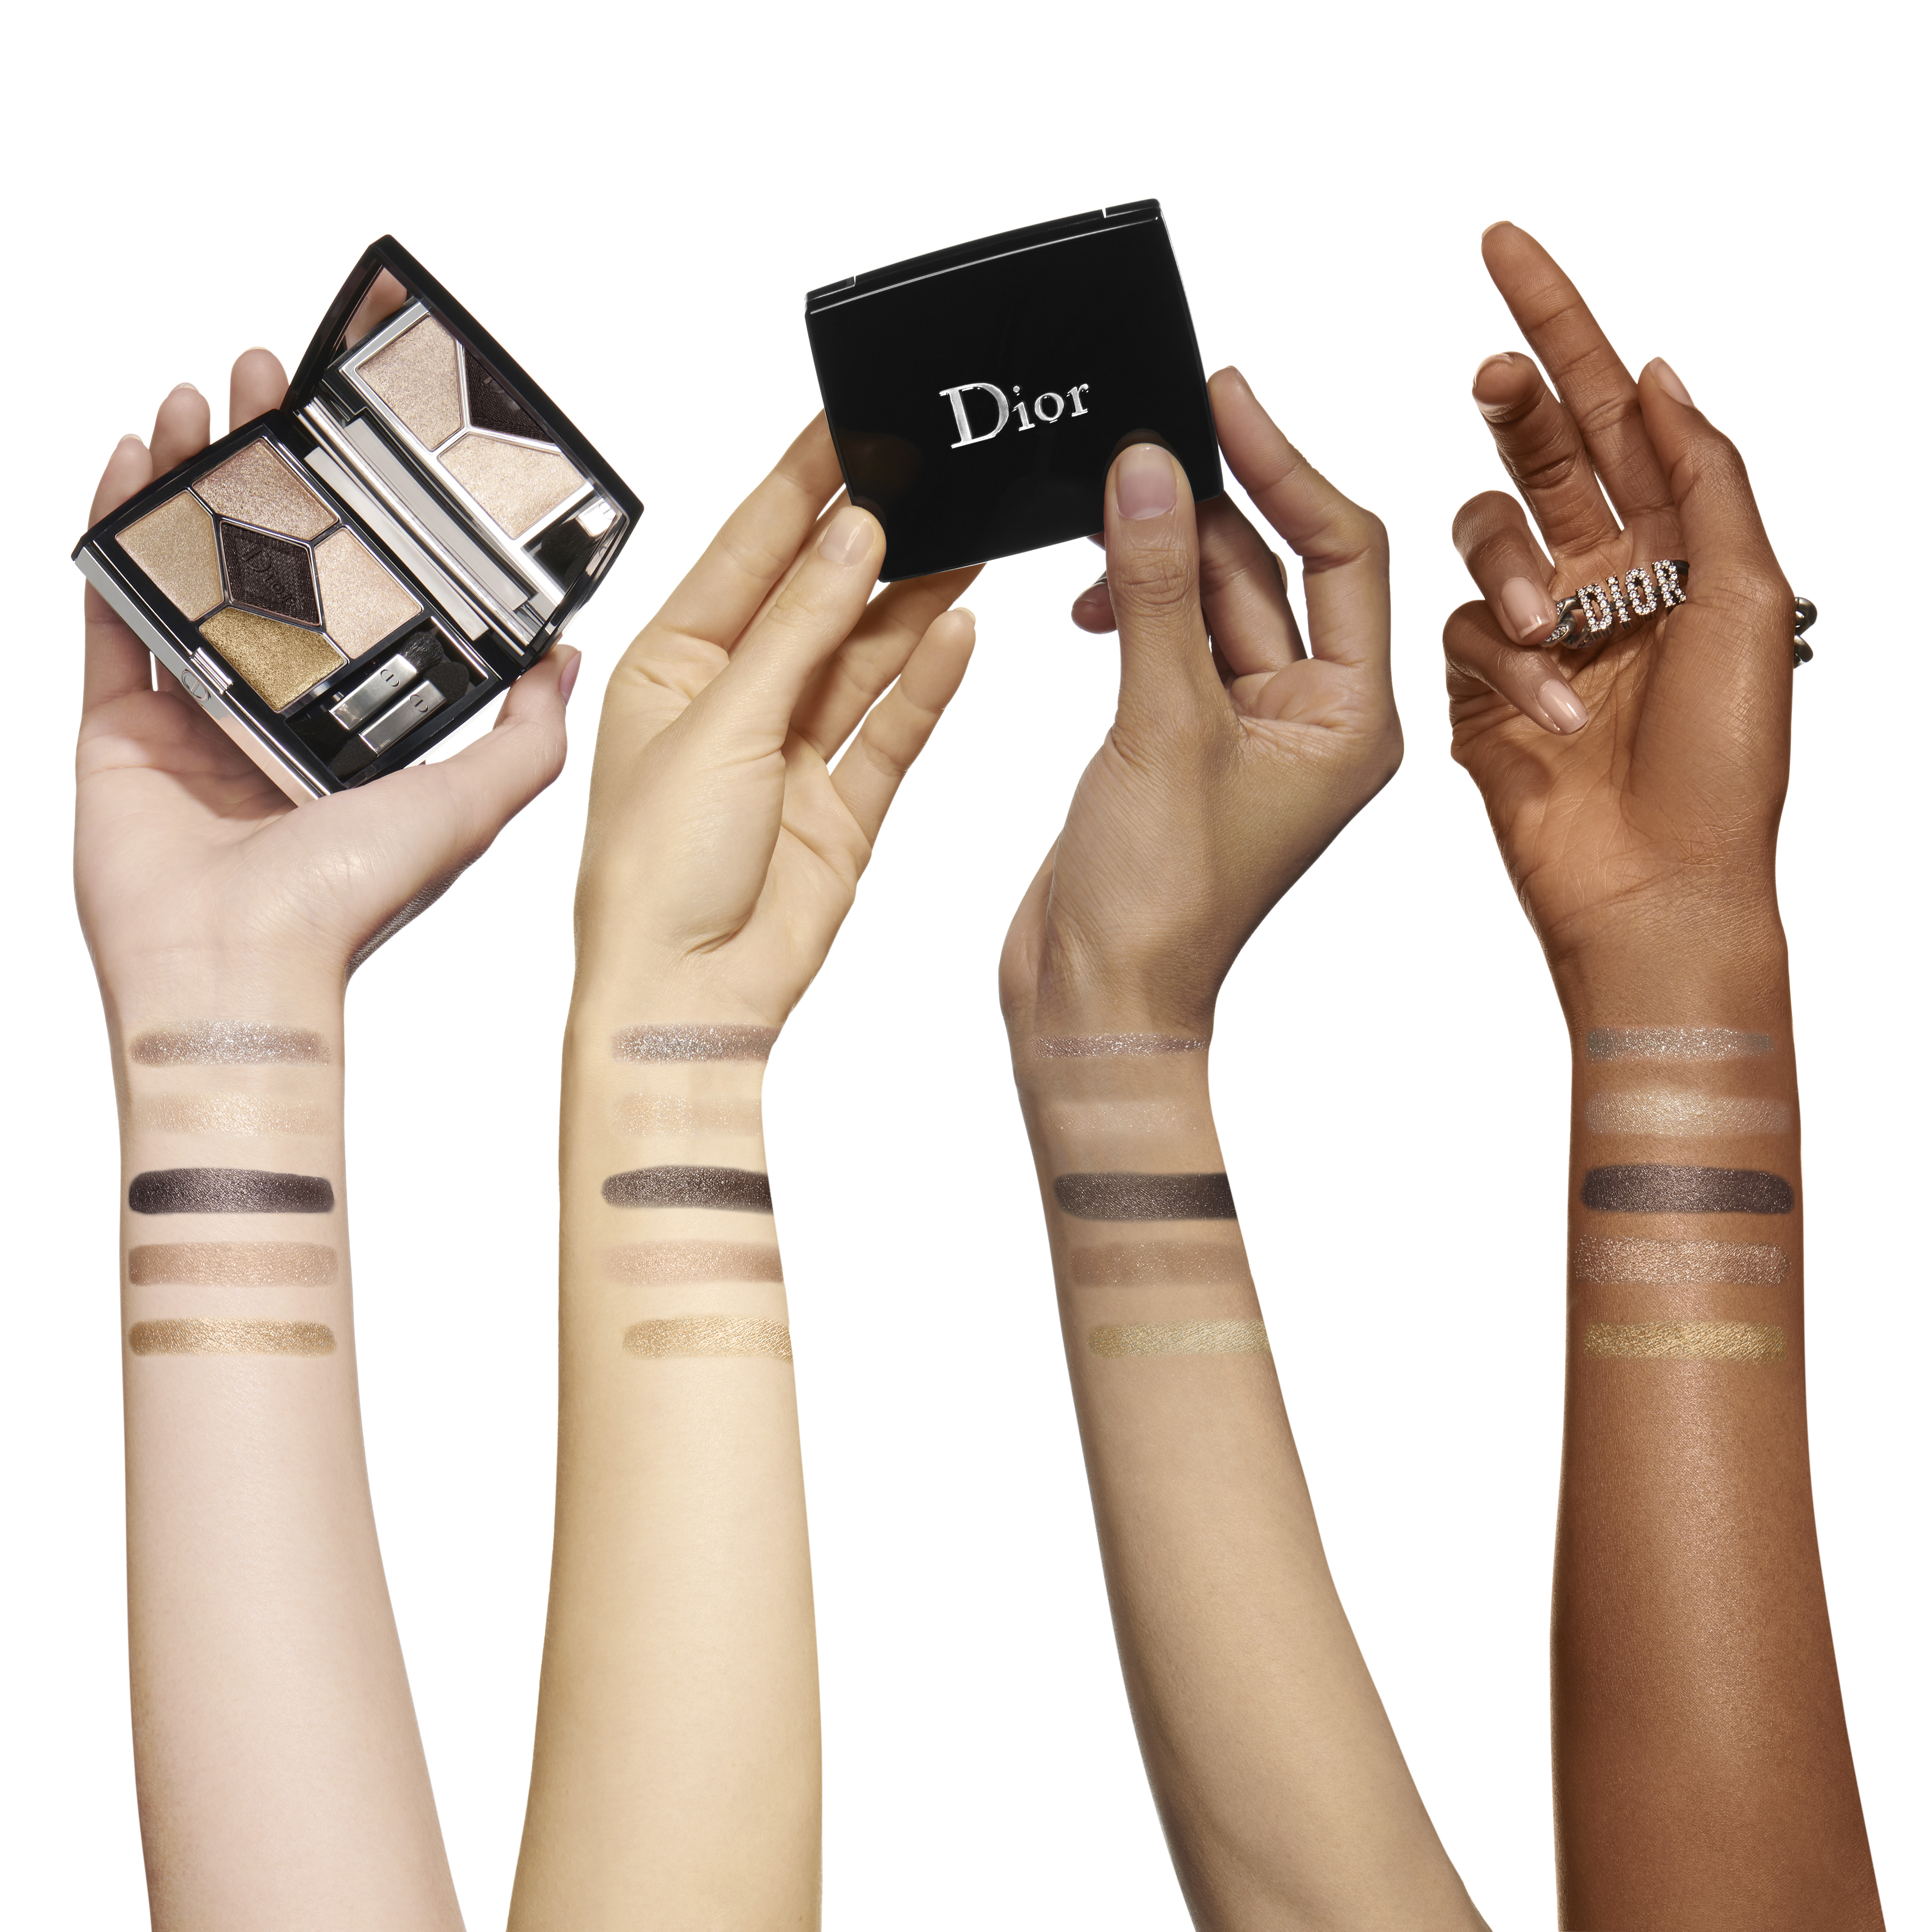 DIOR 5 Couleurs Couture Palette, 539 grand bal